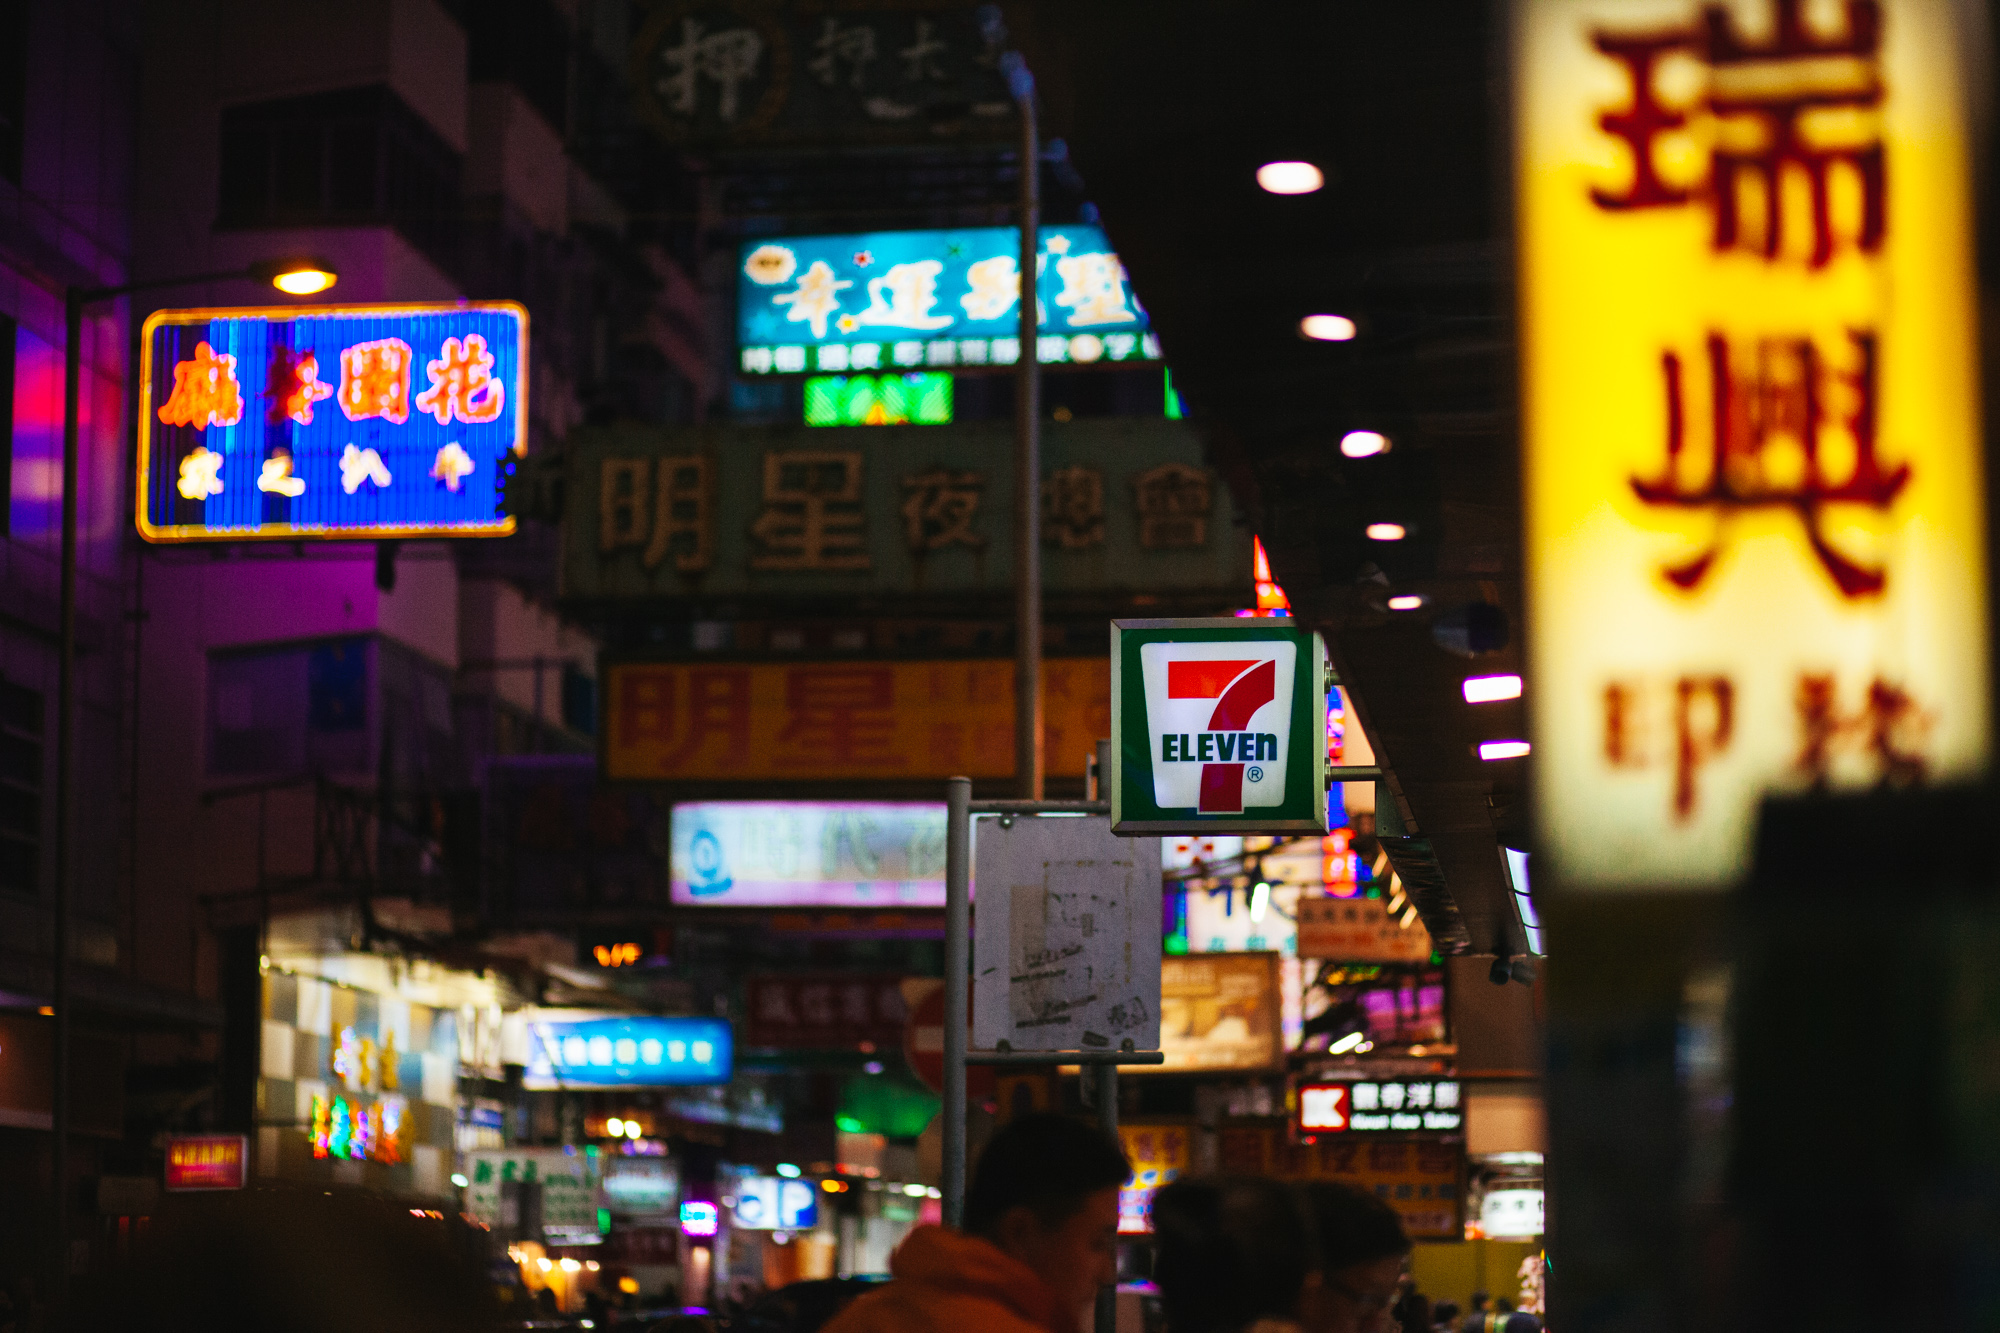 After a couple of hours of wandering, the moon rose over the streets of Mong Kok. This is where sensory overload is born.